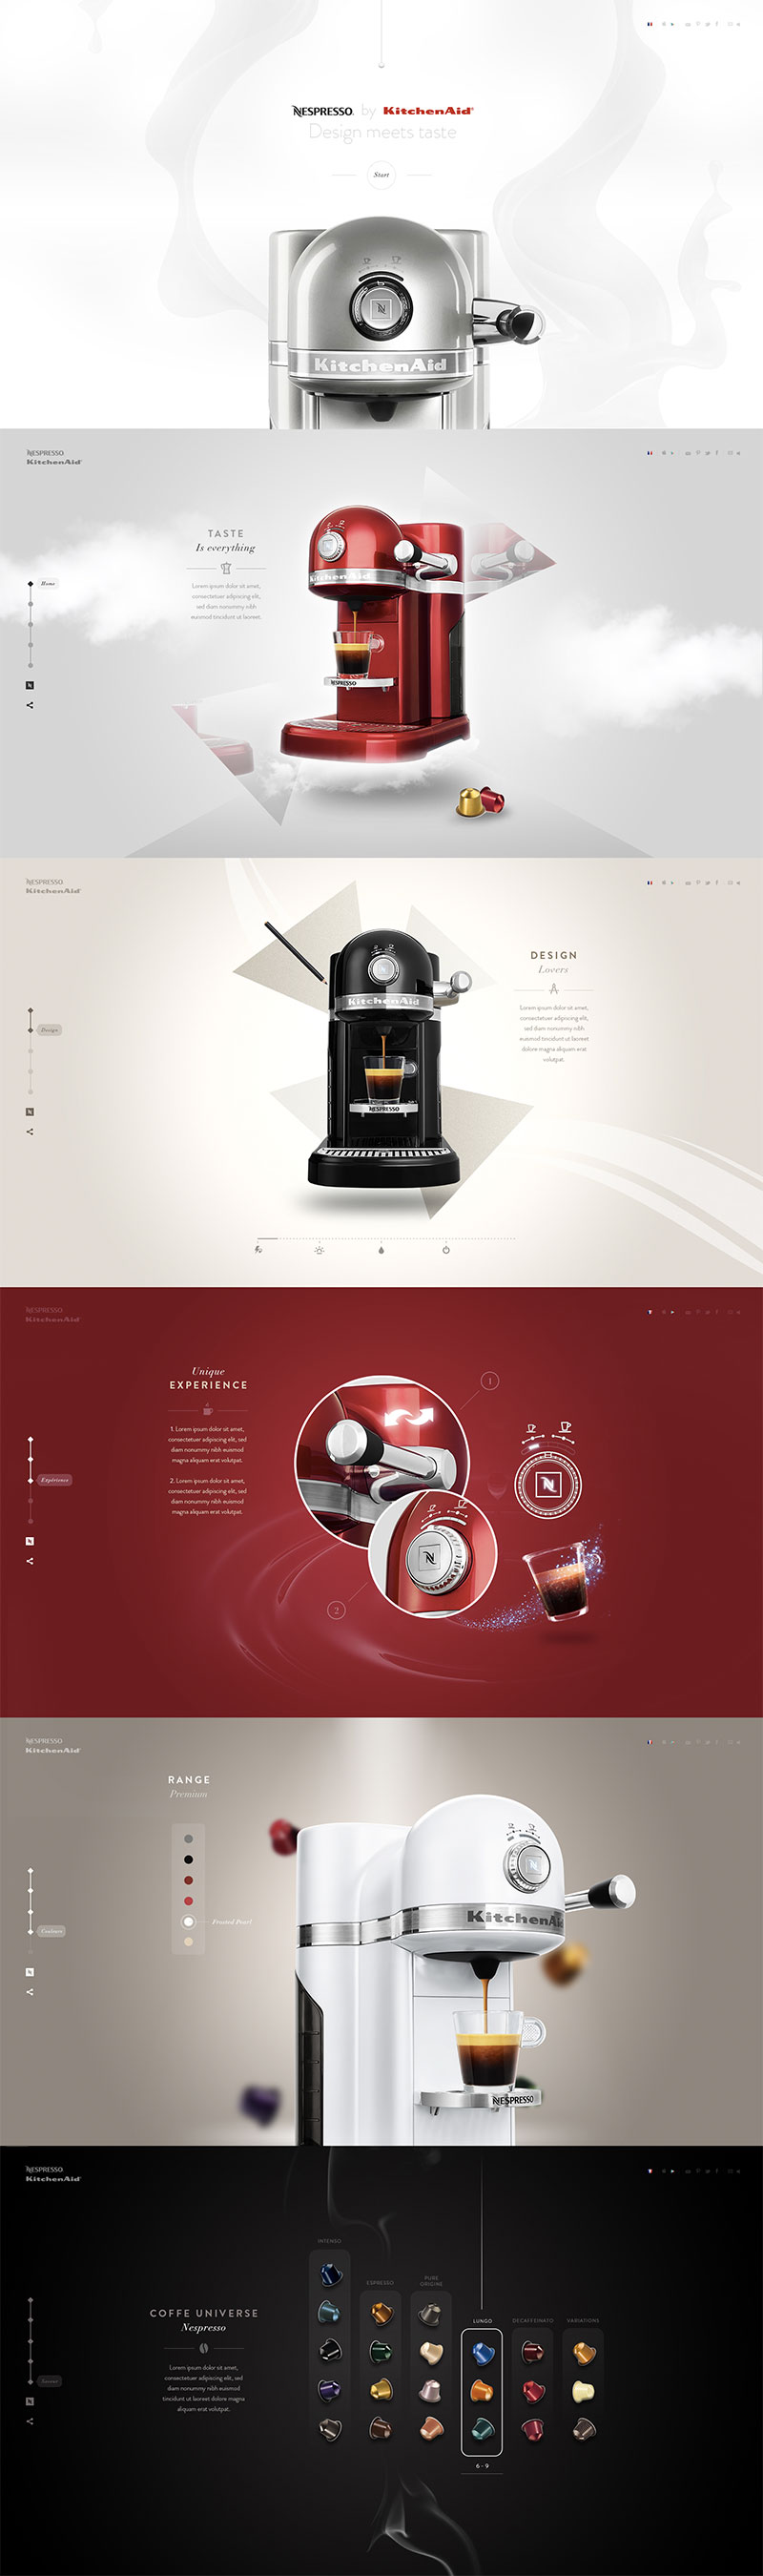 nespresso by kithenaid